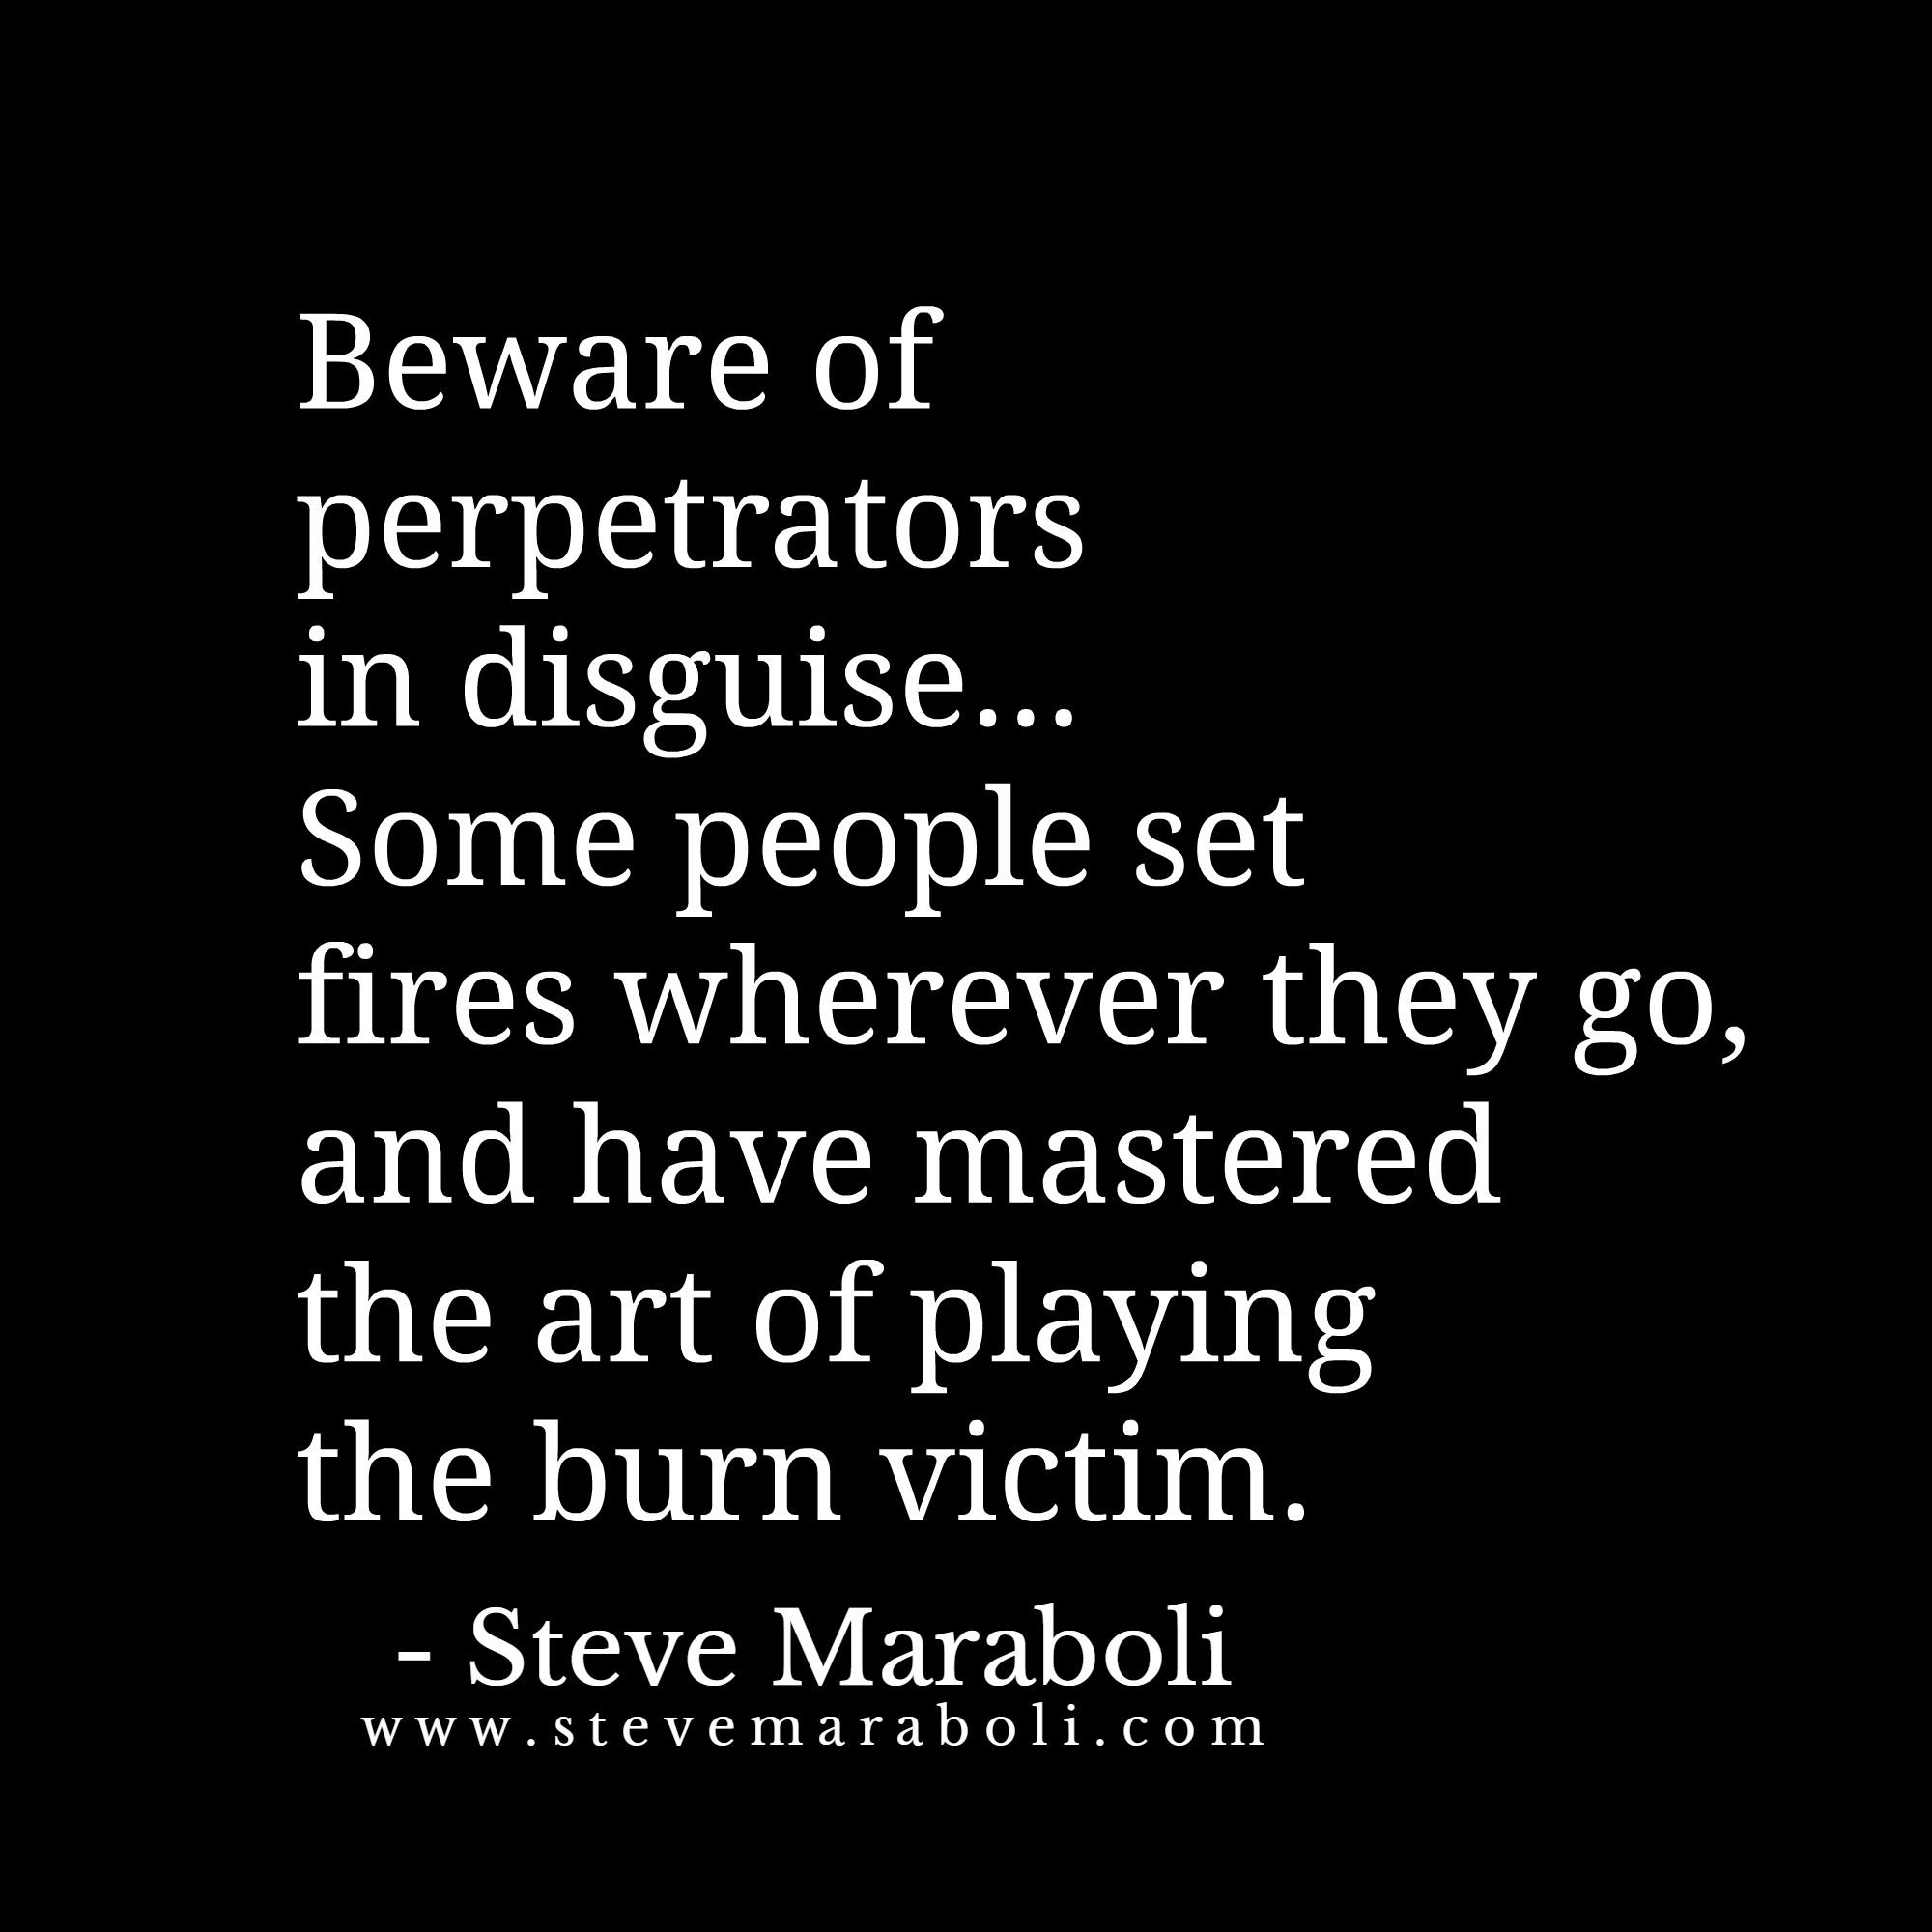 Beware Of Perpetrators In Disguise Some People Set Fires Wherever